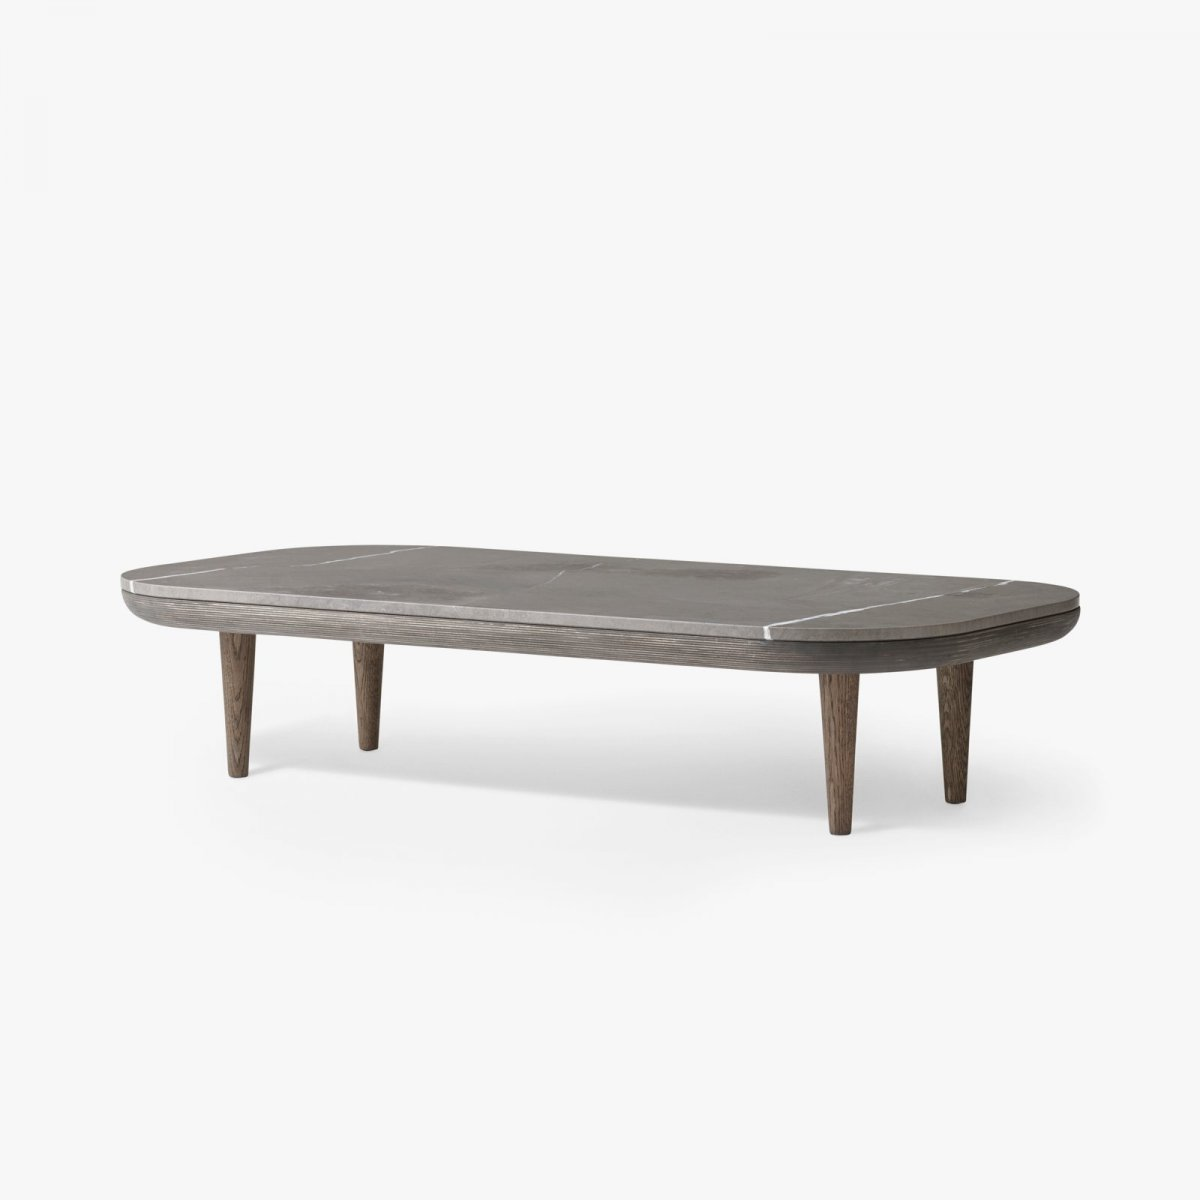 Fly Table SC5, smoke oiled oak frame with honed Pietra di Fossena marble top.